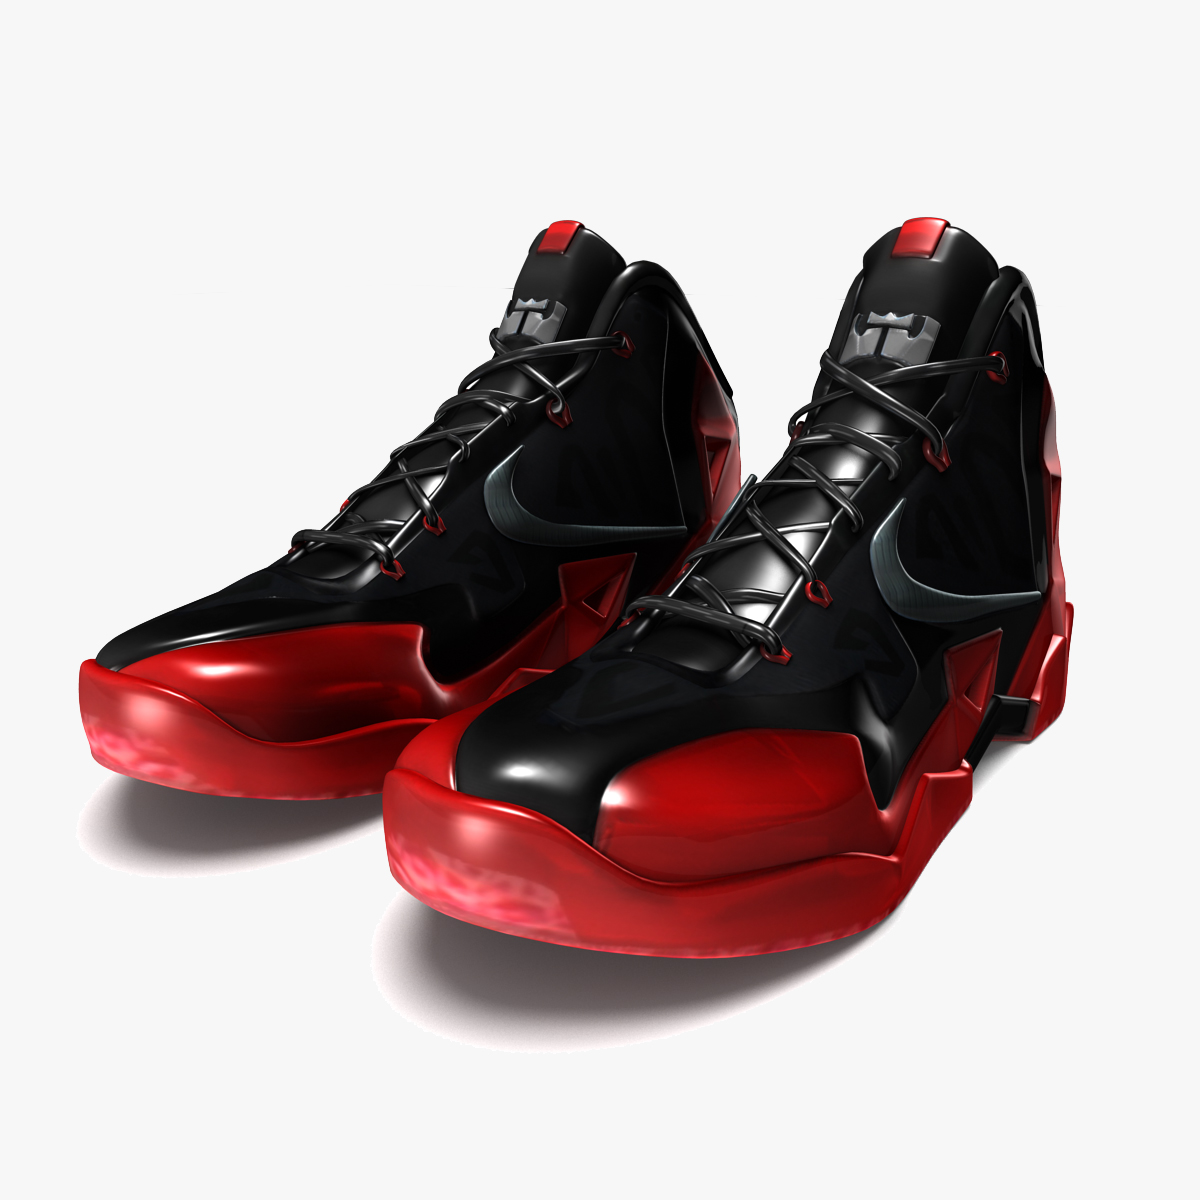 Lebron James Shoes 11 Red